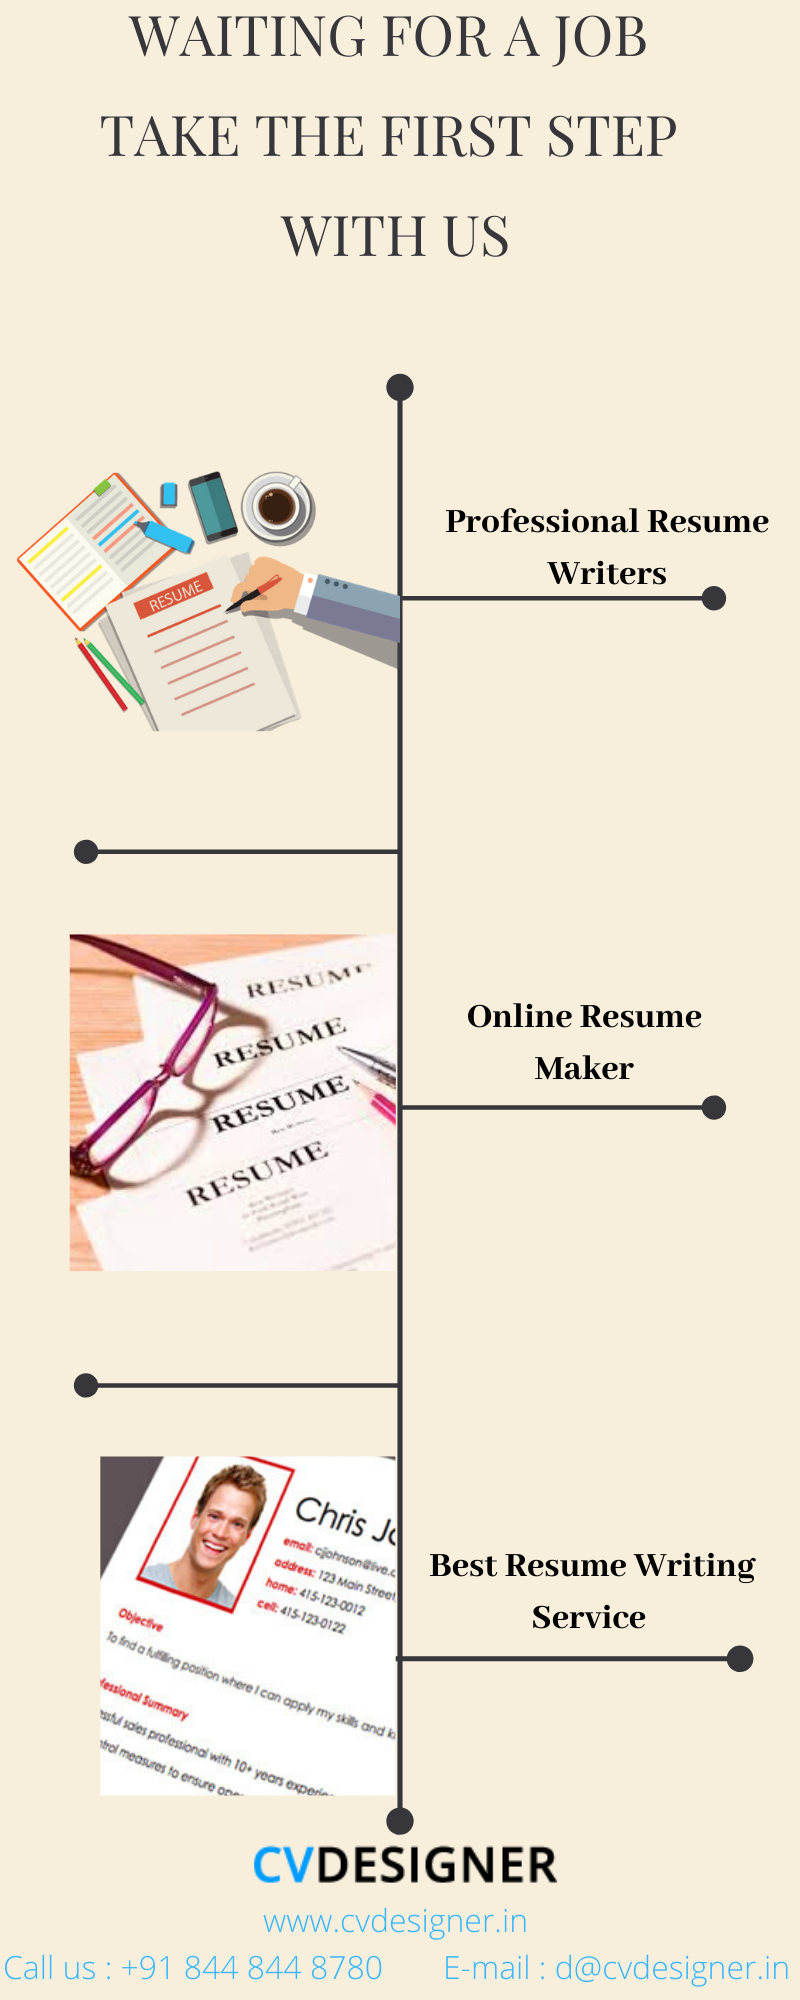 Resume Writing Services In Bangalore Resume Writer Professional Resume Writers Resume Writing Services